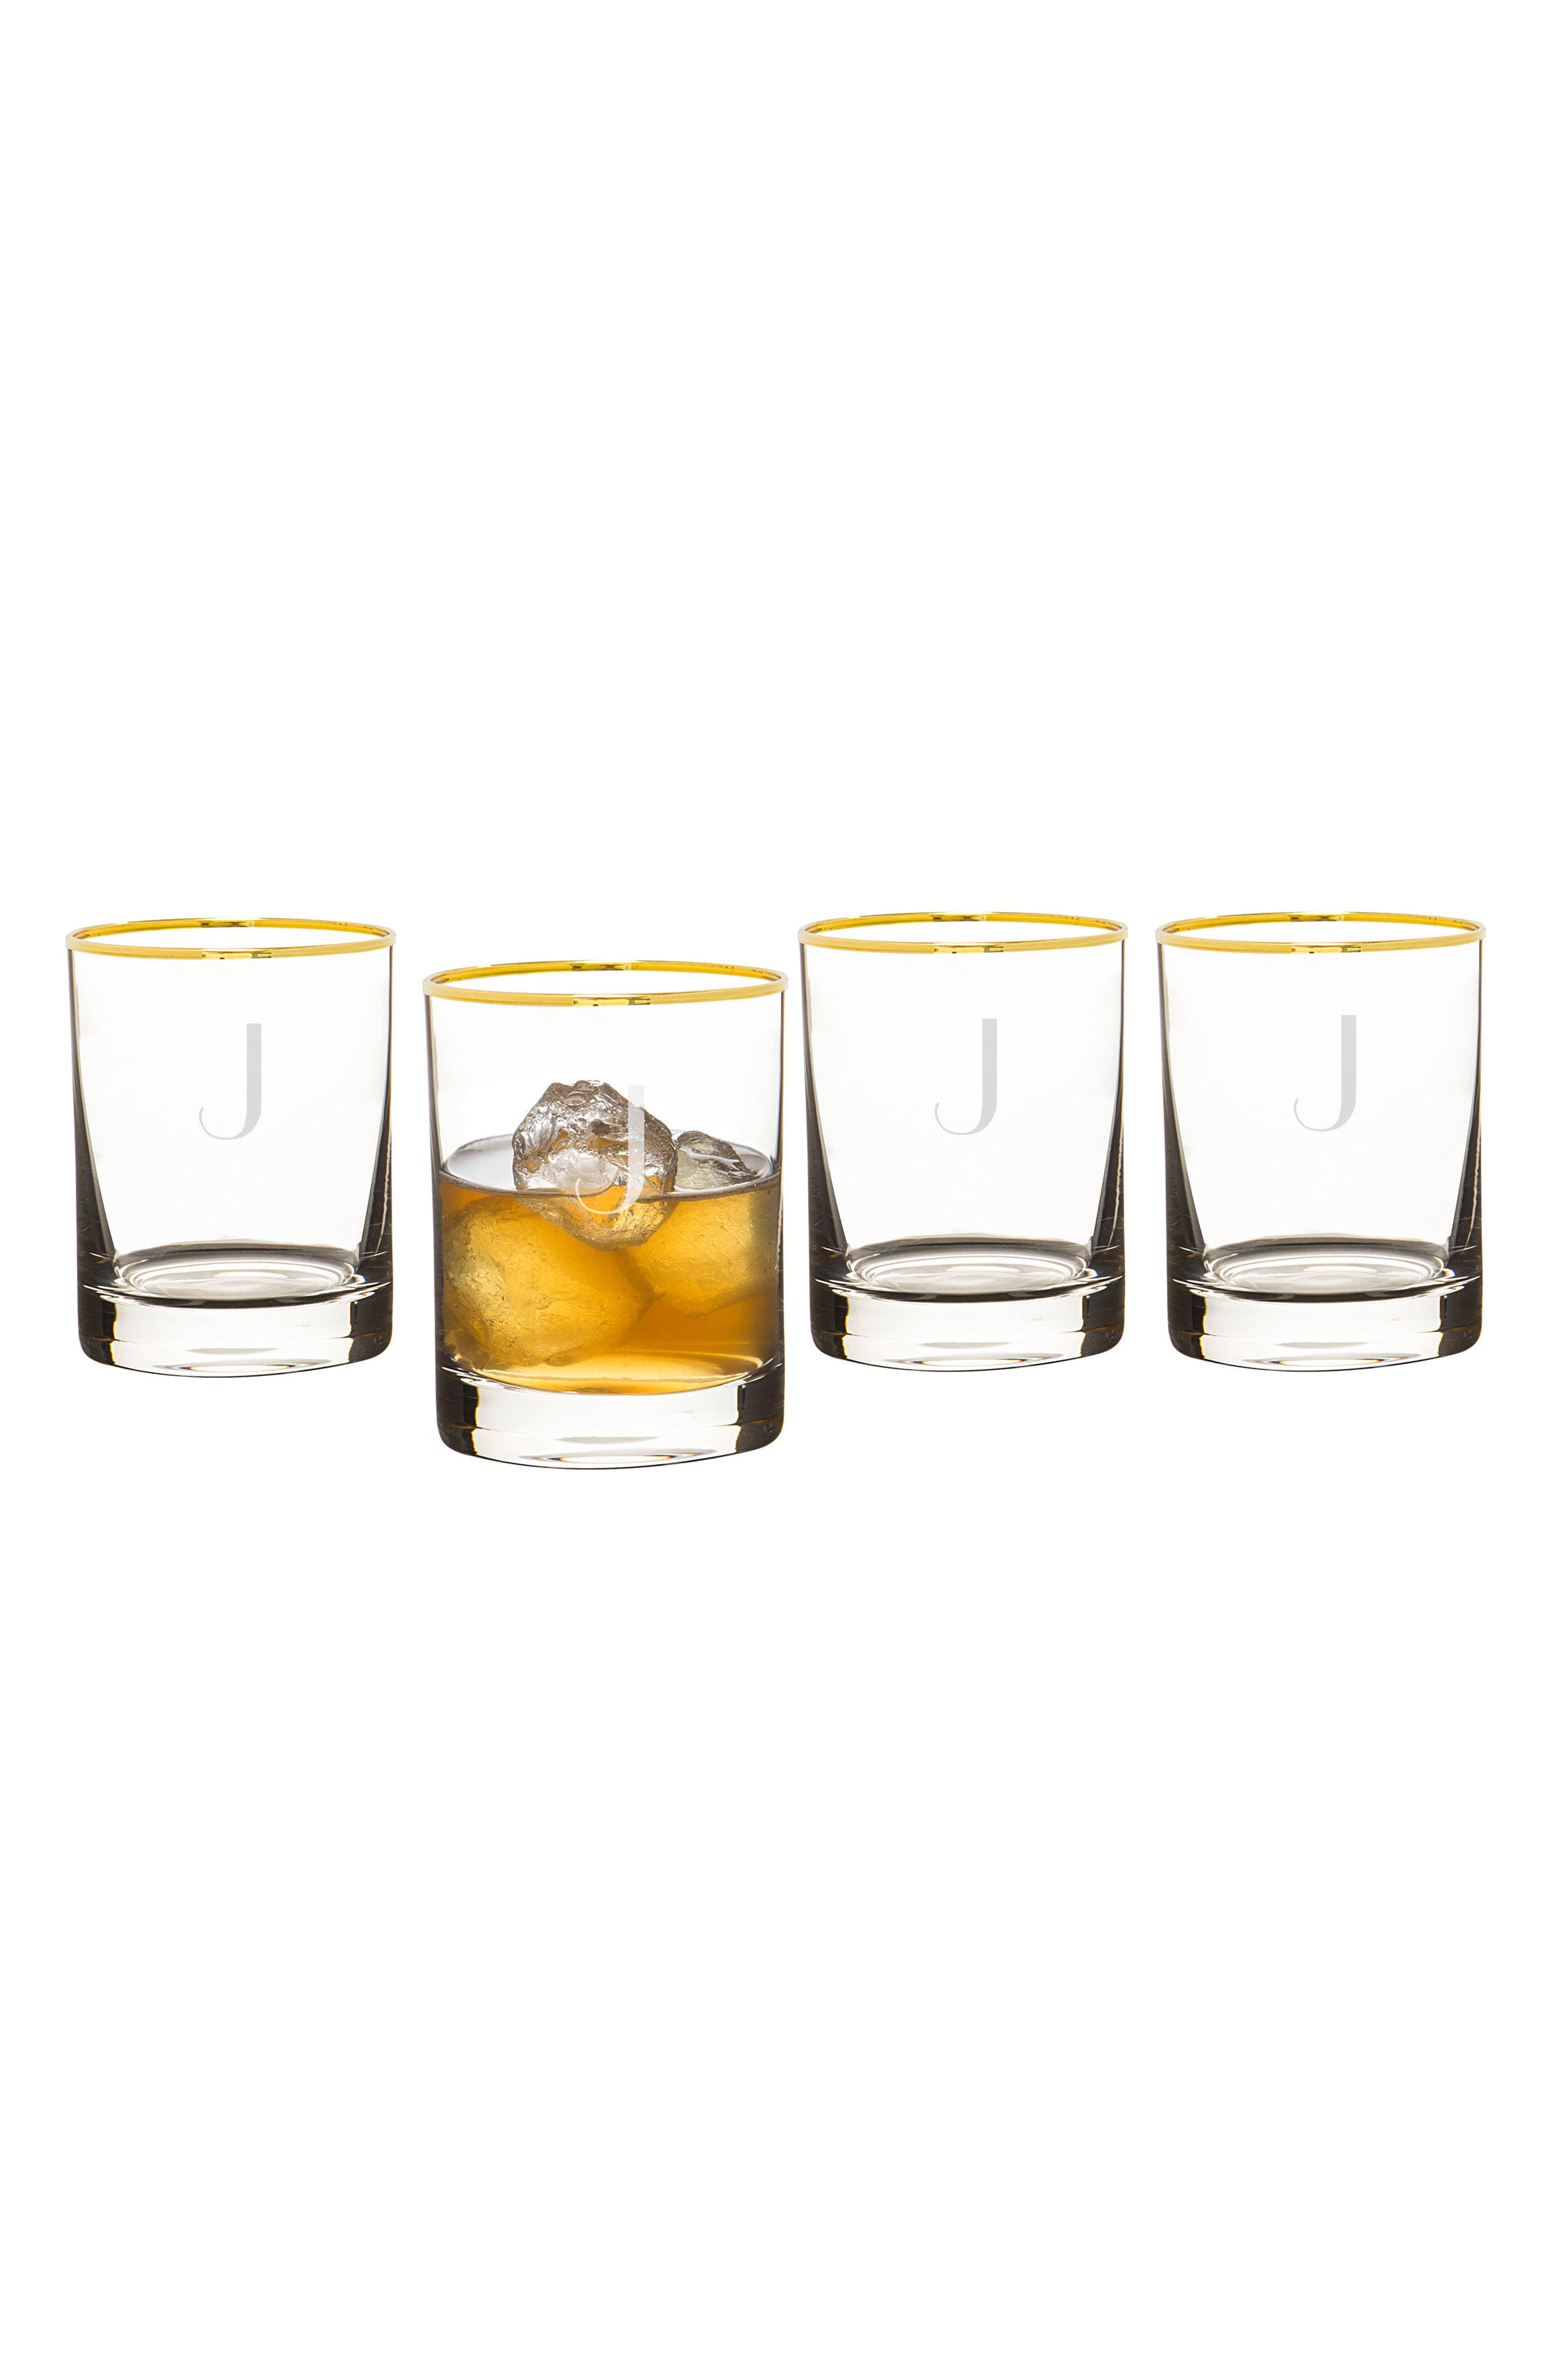 Monogram Set of 4 Double Old Fashioned Glasses,                             Main thumbnail 11, color,